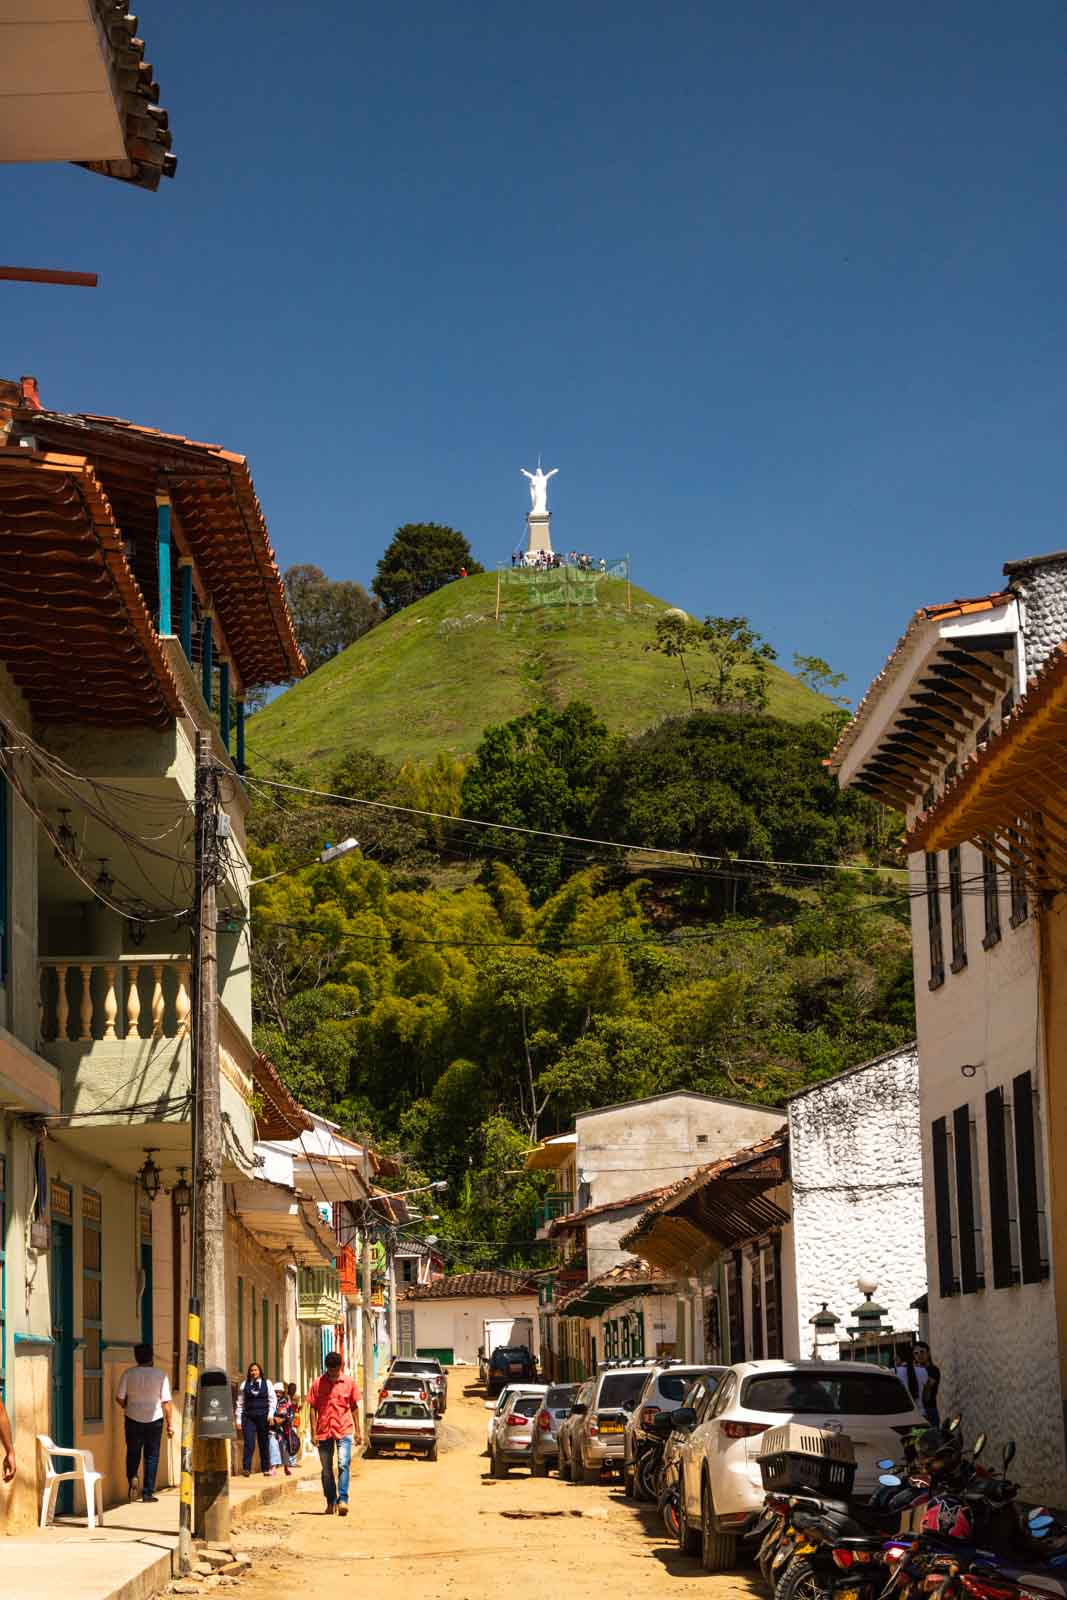 The view of Cristo Redentor from the street in Jerico, Colombia.